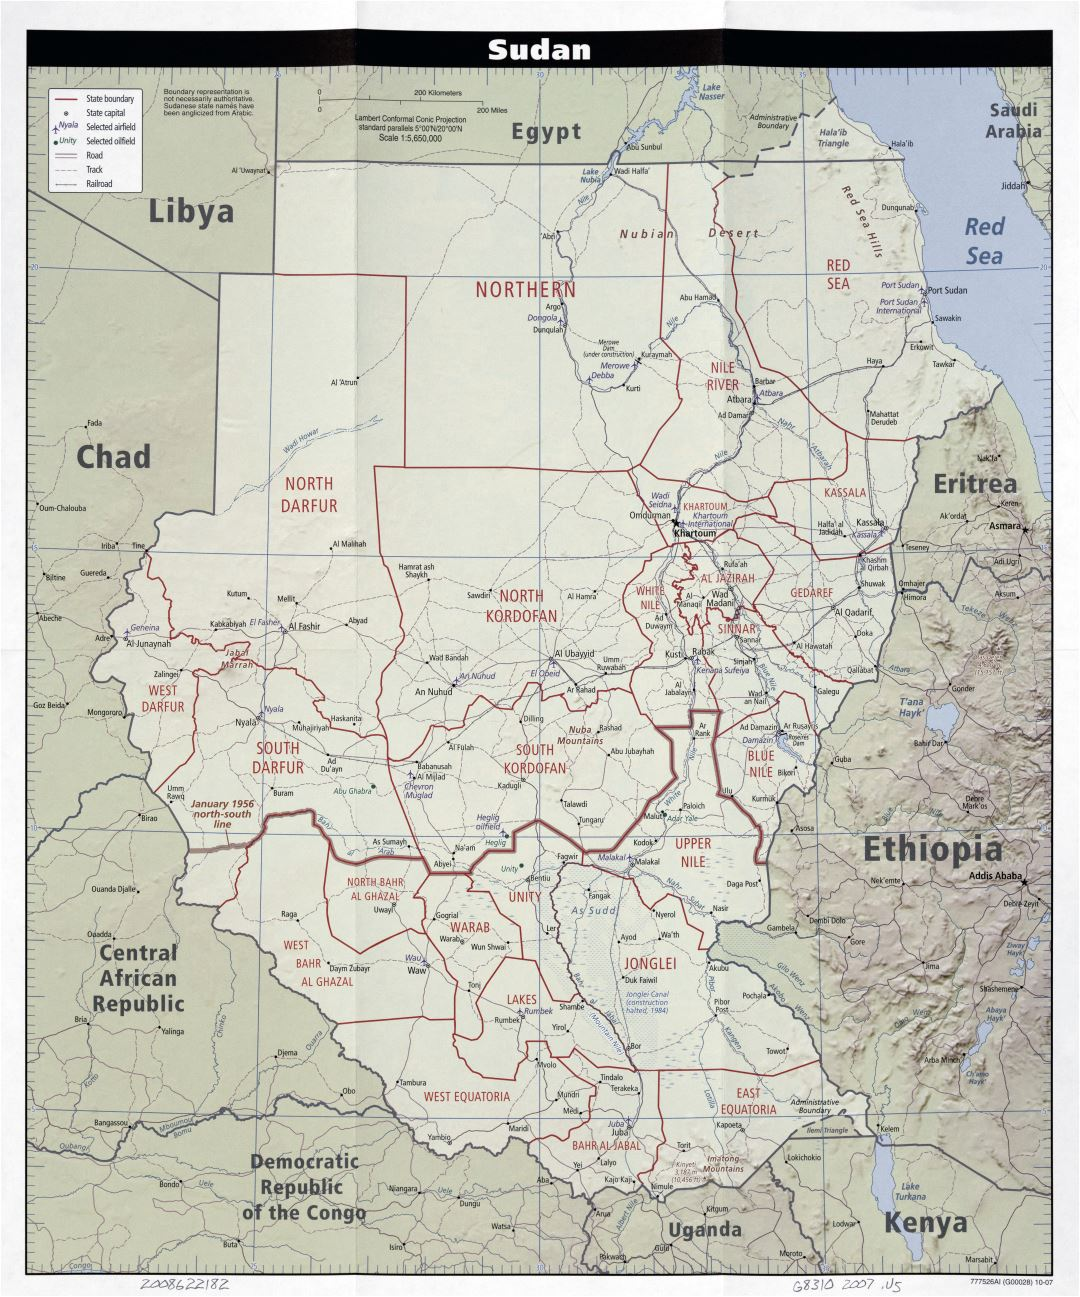 Large scale political and administrative map of Sudan with relief, roads, railroads, cities and airports - 2007